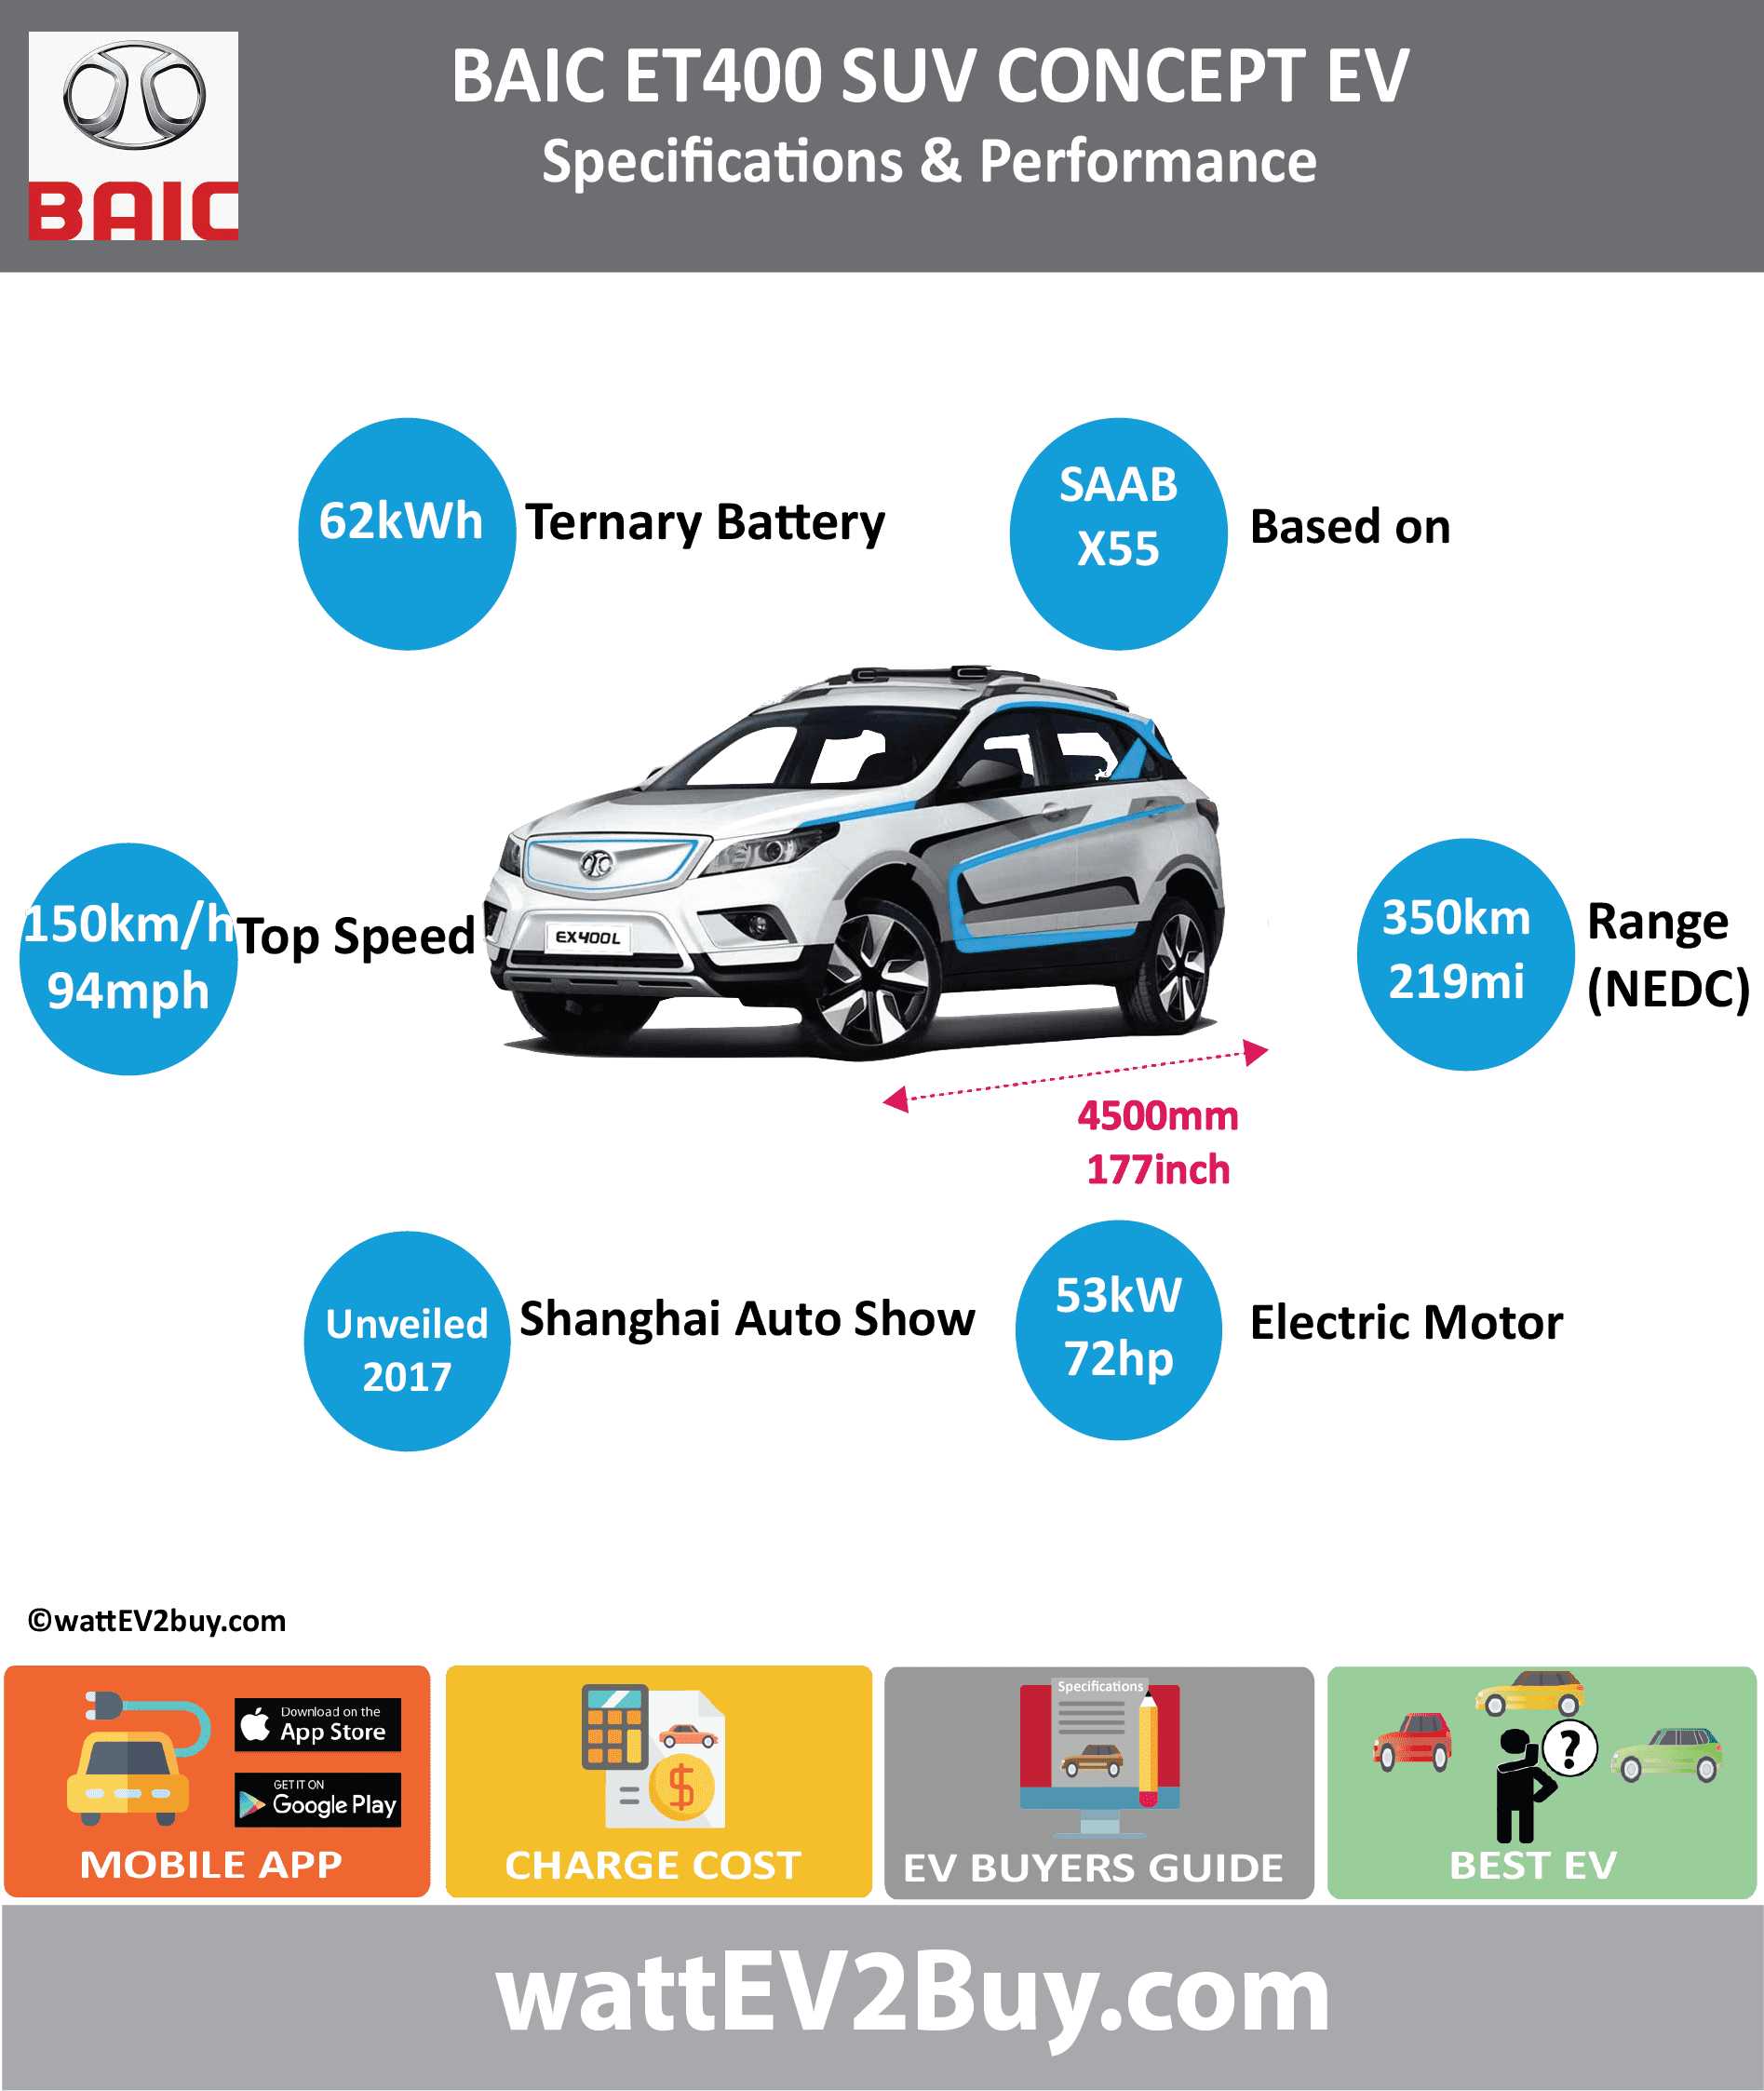 BAIC ET400 EV SUV SPECS wattev2Buy.com 2018 Battery Chemistry Battery Capacity kWh 62 Battery Nominal rating kWh Voltage V Amps Ah Cells Modules Weight (kg) 450 Cell Type Cooling Cycles Depth of Discharge (DOD) Energy Density Wh/kg Battery Manufacturer Battery Warranty - years Battery Warranty - km Battery Electric Range - at constant 38mph Battery Electric Range - at constant 60km/h Battery Electric Range - NEDC Mi 219 Battery Electric Range - NEDC km 350 Electric Top Speed - mph 94 Electric Top Speed - km/h 150 Acceleration 0 - 100km/h sec Acceleration 0 - 50km/h sec Onboard Charger kW LV 1 Charge kW LV 1 Charge Time (Hours) LV 2 Charge kW LV 2 Charge Time (Hours) LV 3 CCS/Combo kW LV 3 Charge Time (min to 80%) Charge Connector MPGe Combined - miles MPGe Combined - km MPGe City - miles MPGe City - km MPGe Highway - miles MPGe Highway - km Max Power - hp Max Power - kW Max Torque - lb.ft Max Torque - N.m Drivetrain Electric Motor Rear Electric Motor Front Motor Type Electric Motor Output kW Transmission Energy Consumption kWh/100km MSRP (before incentives & destination) MSRP after incentives Vehicle Doors Seating Dimensions GVWR (kg) Curb Weight (kg) 1762 Payload Capacity (lbs) Towing Capacity (lbs) Ground Clearance (mm) Lenght (mm) 4500 Width (mm) Height (mm) Wheelbase (mm) 2650 Lenght (inc) 177.0 Width (inc) 0.0 Height (inc) 0.0 Wheelbase (inc) 104.2 Other Market Class Incentives Safety Level Auto Show Unveil Shanghai Auto Show Unveiled Apr-17 First Delivery Based On SAAB X55 SAE Autonomous Level 2 Self-Driving System ADAS Connectivity I-Link Unique Chinese Name 北汽ET400 Model Code BJ7001U5E1-BEV WEBSITE